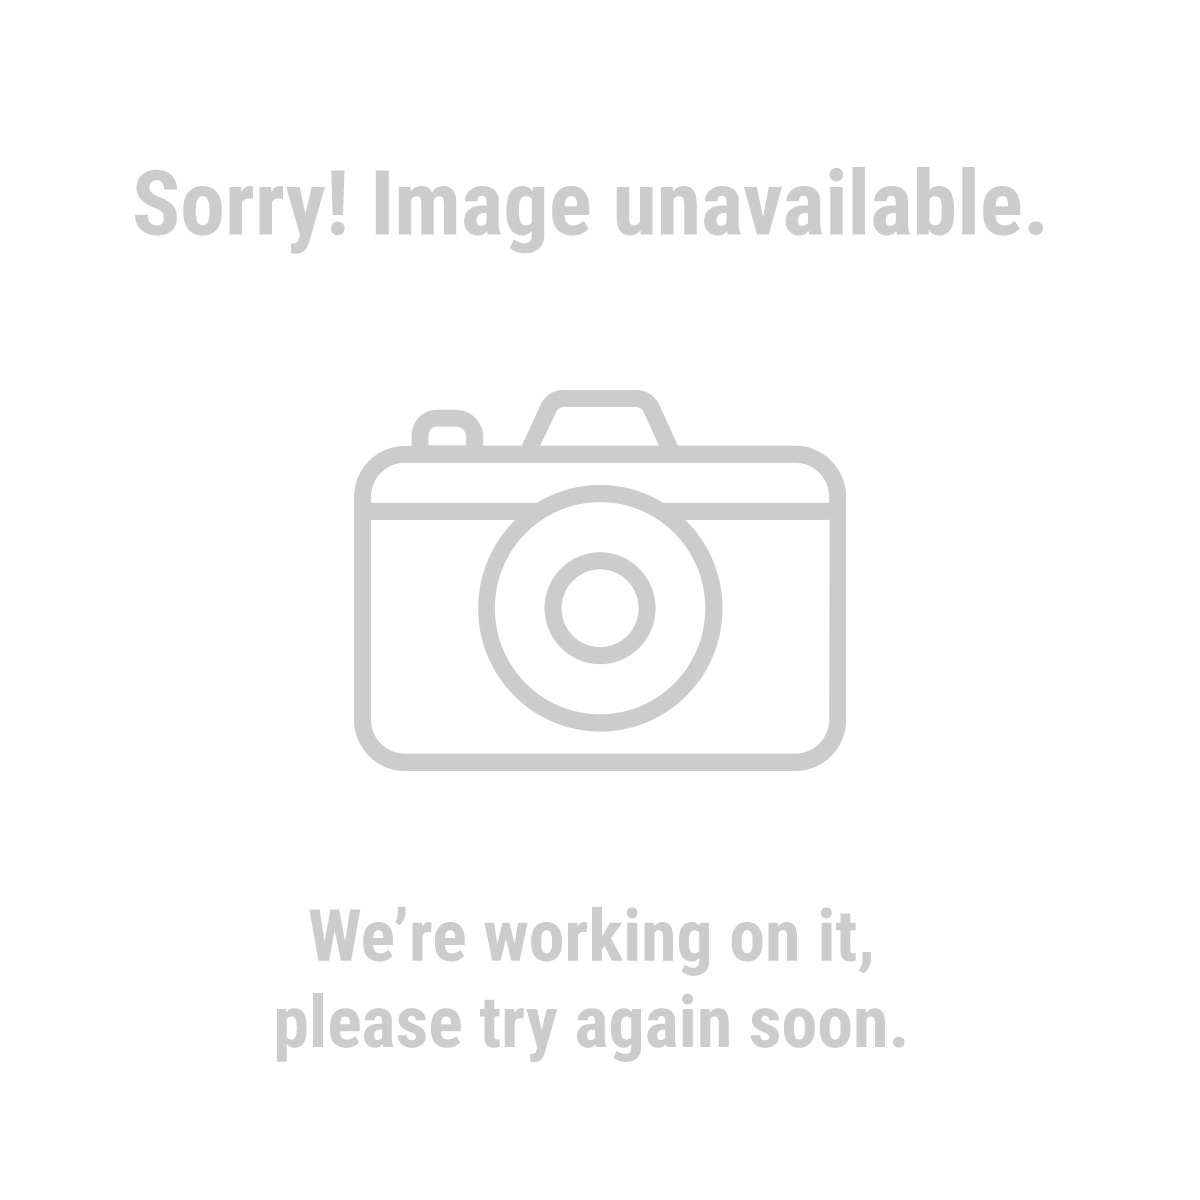 Chicago Electric Power Tools 61307 10 in. Sliding Compound Miter Saw